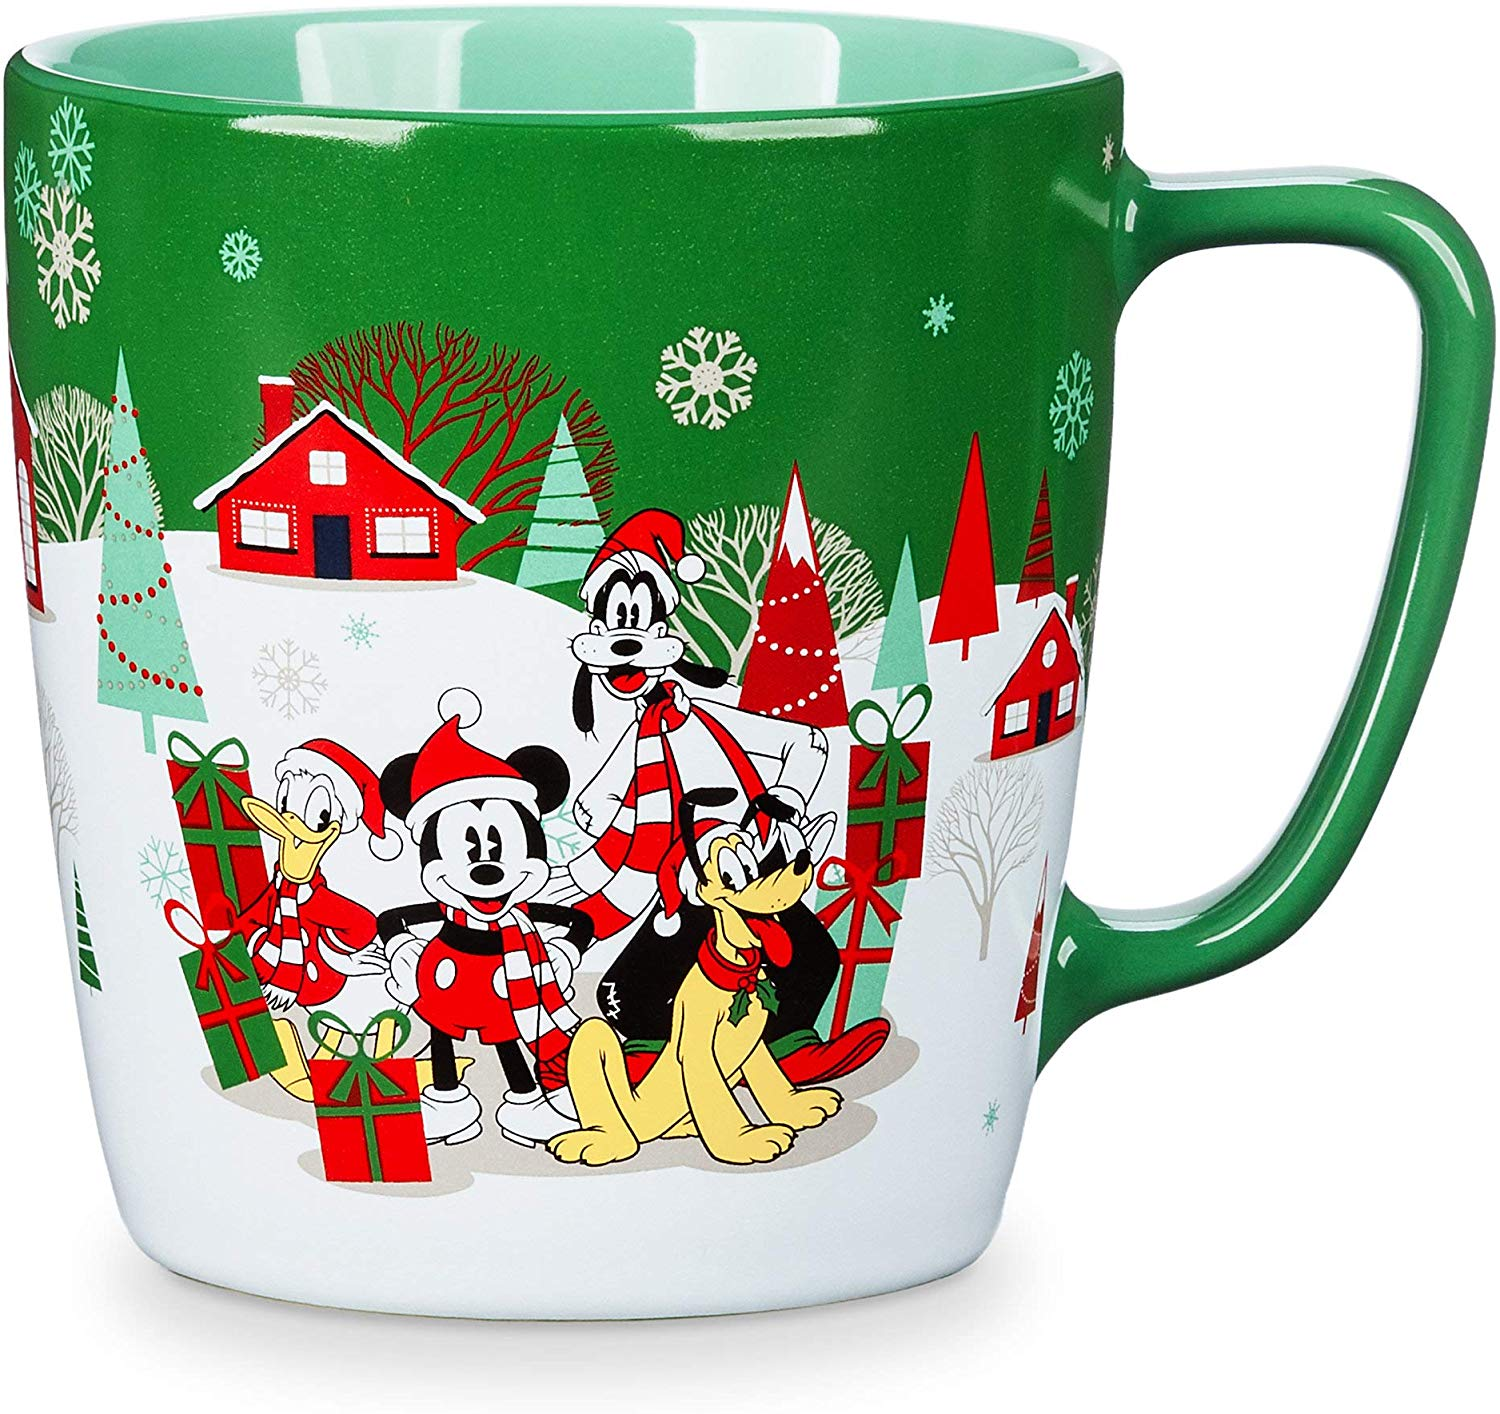 Disney Mickey Mouse and Friends Holiday Mug